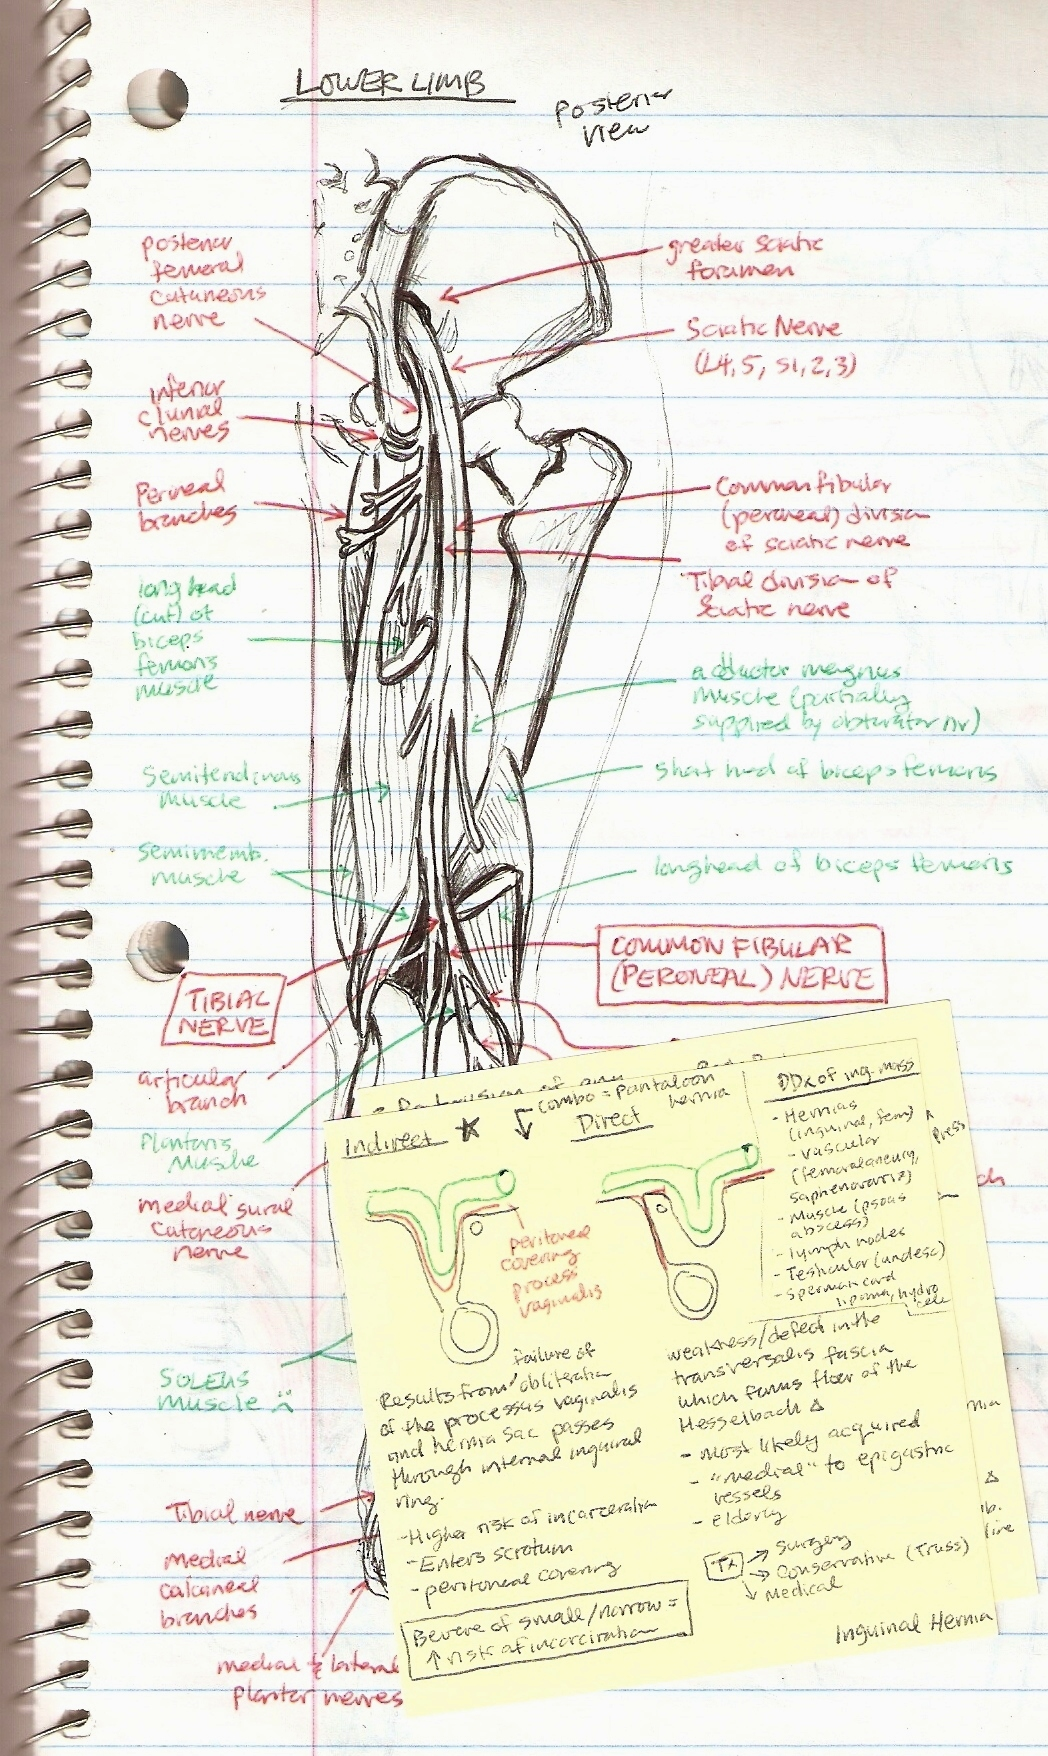 Michiko Maruyama Orthopedic Rotation Sketches Leg Nerves plus Inguinal Hernia Sticky Note Diagram